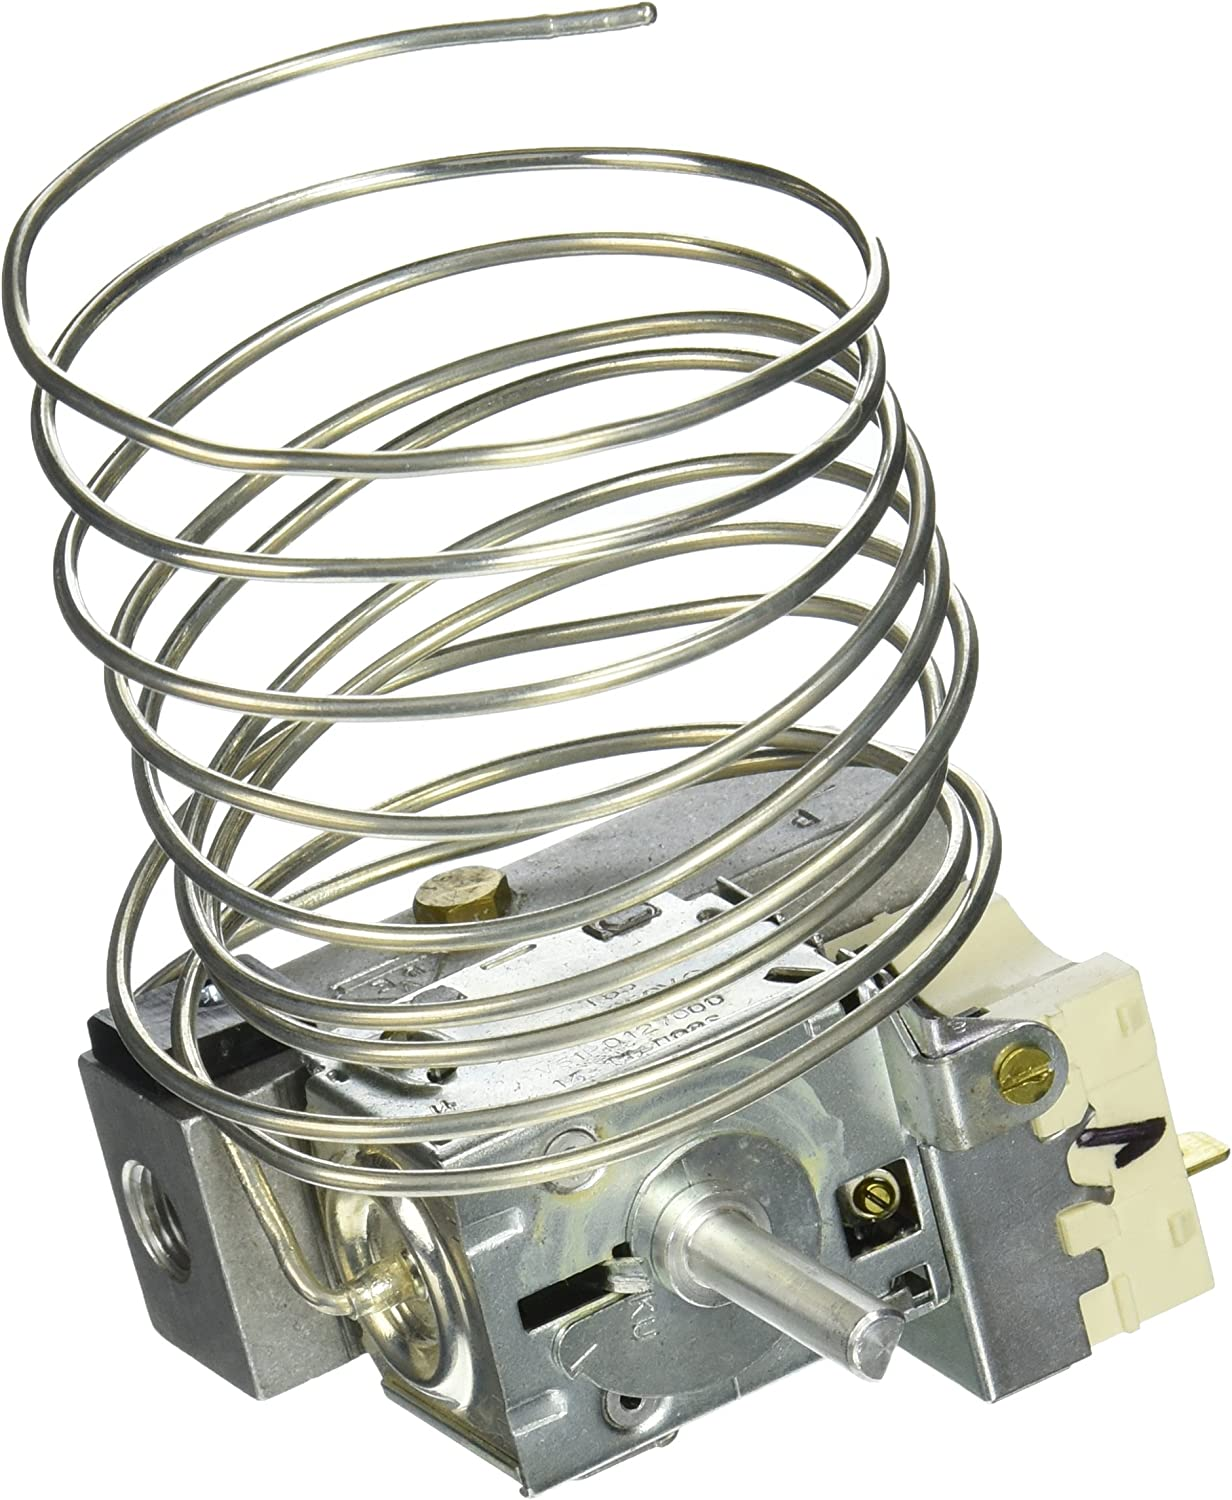 Norcold New Orleans Mall Inc. Refrigerators 617944 Gas Thermostat Valve Special price Control